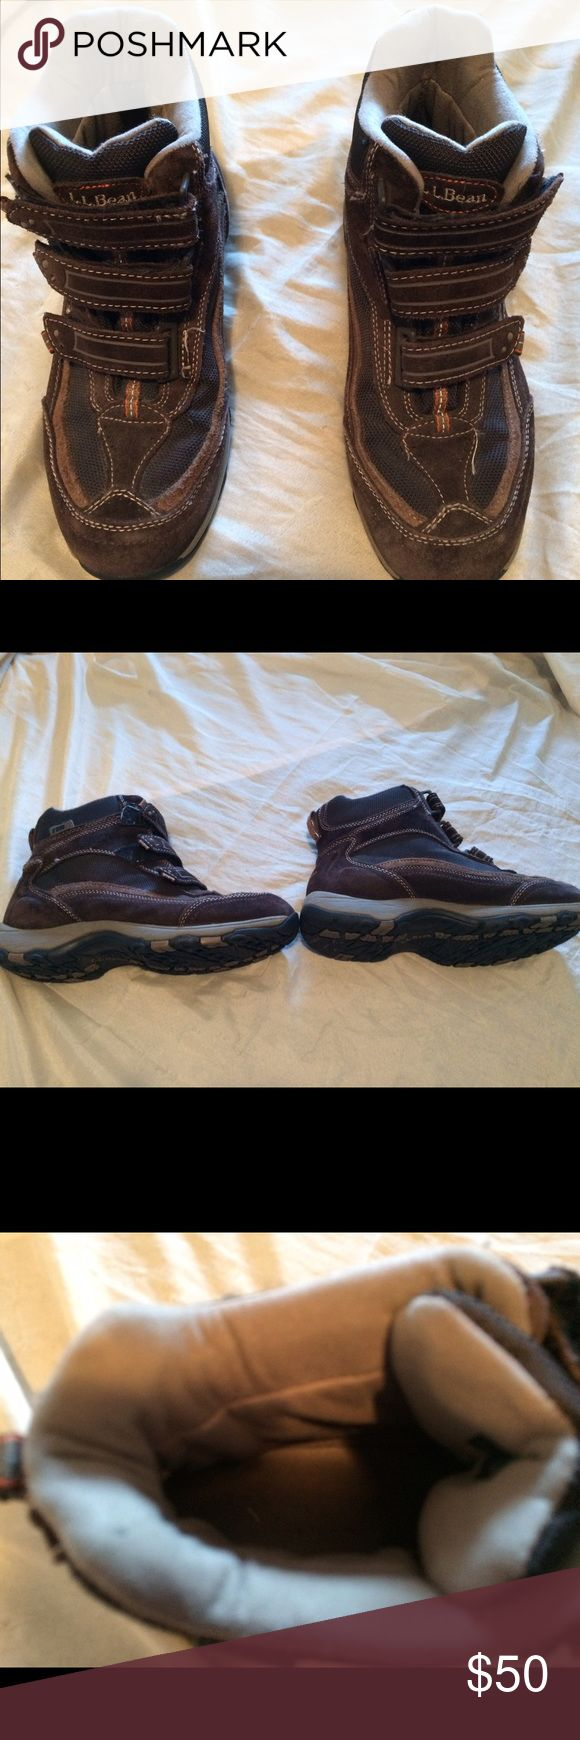 L.L. Bean Men's size 8 1/2 m hiking boots Men's size 8 1/2 Medium. LL Bean hiking boots / sneakers. Brown in color sneaker material. These boots are in good condition with tons of life left in them. L.L. Bean Shoes Boots